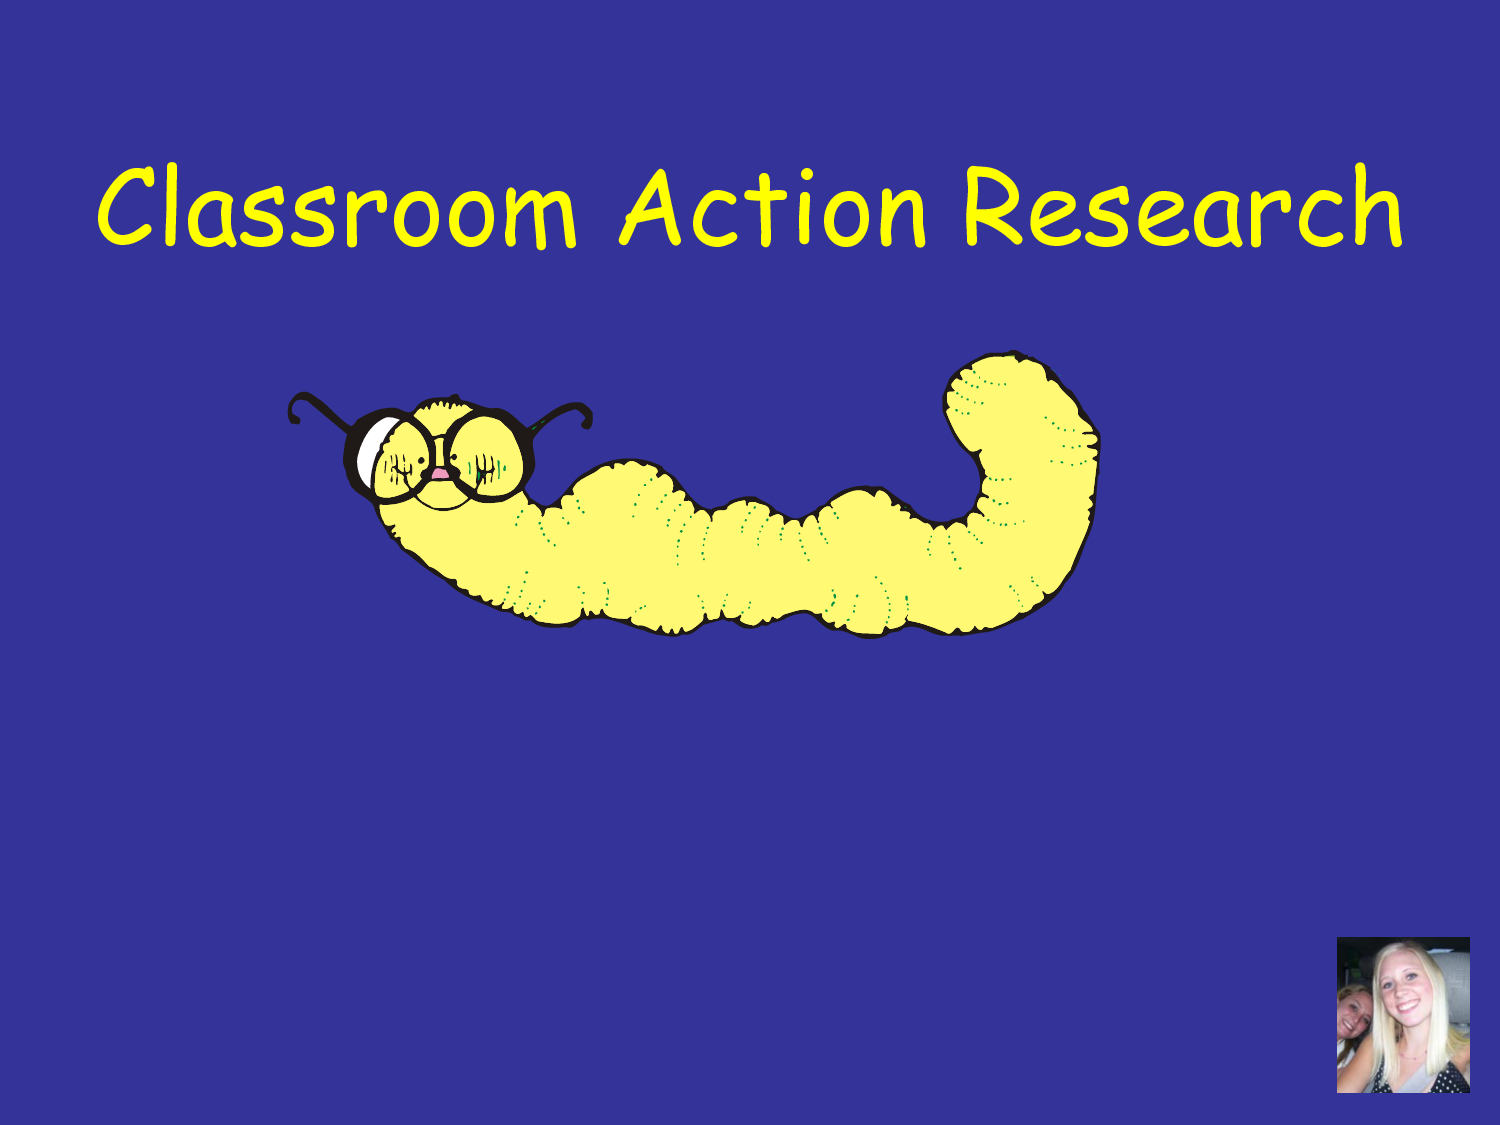 Learning English is Fun: SUMMARY OF CLASSROOM ACTION RESEARCH